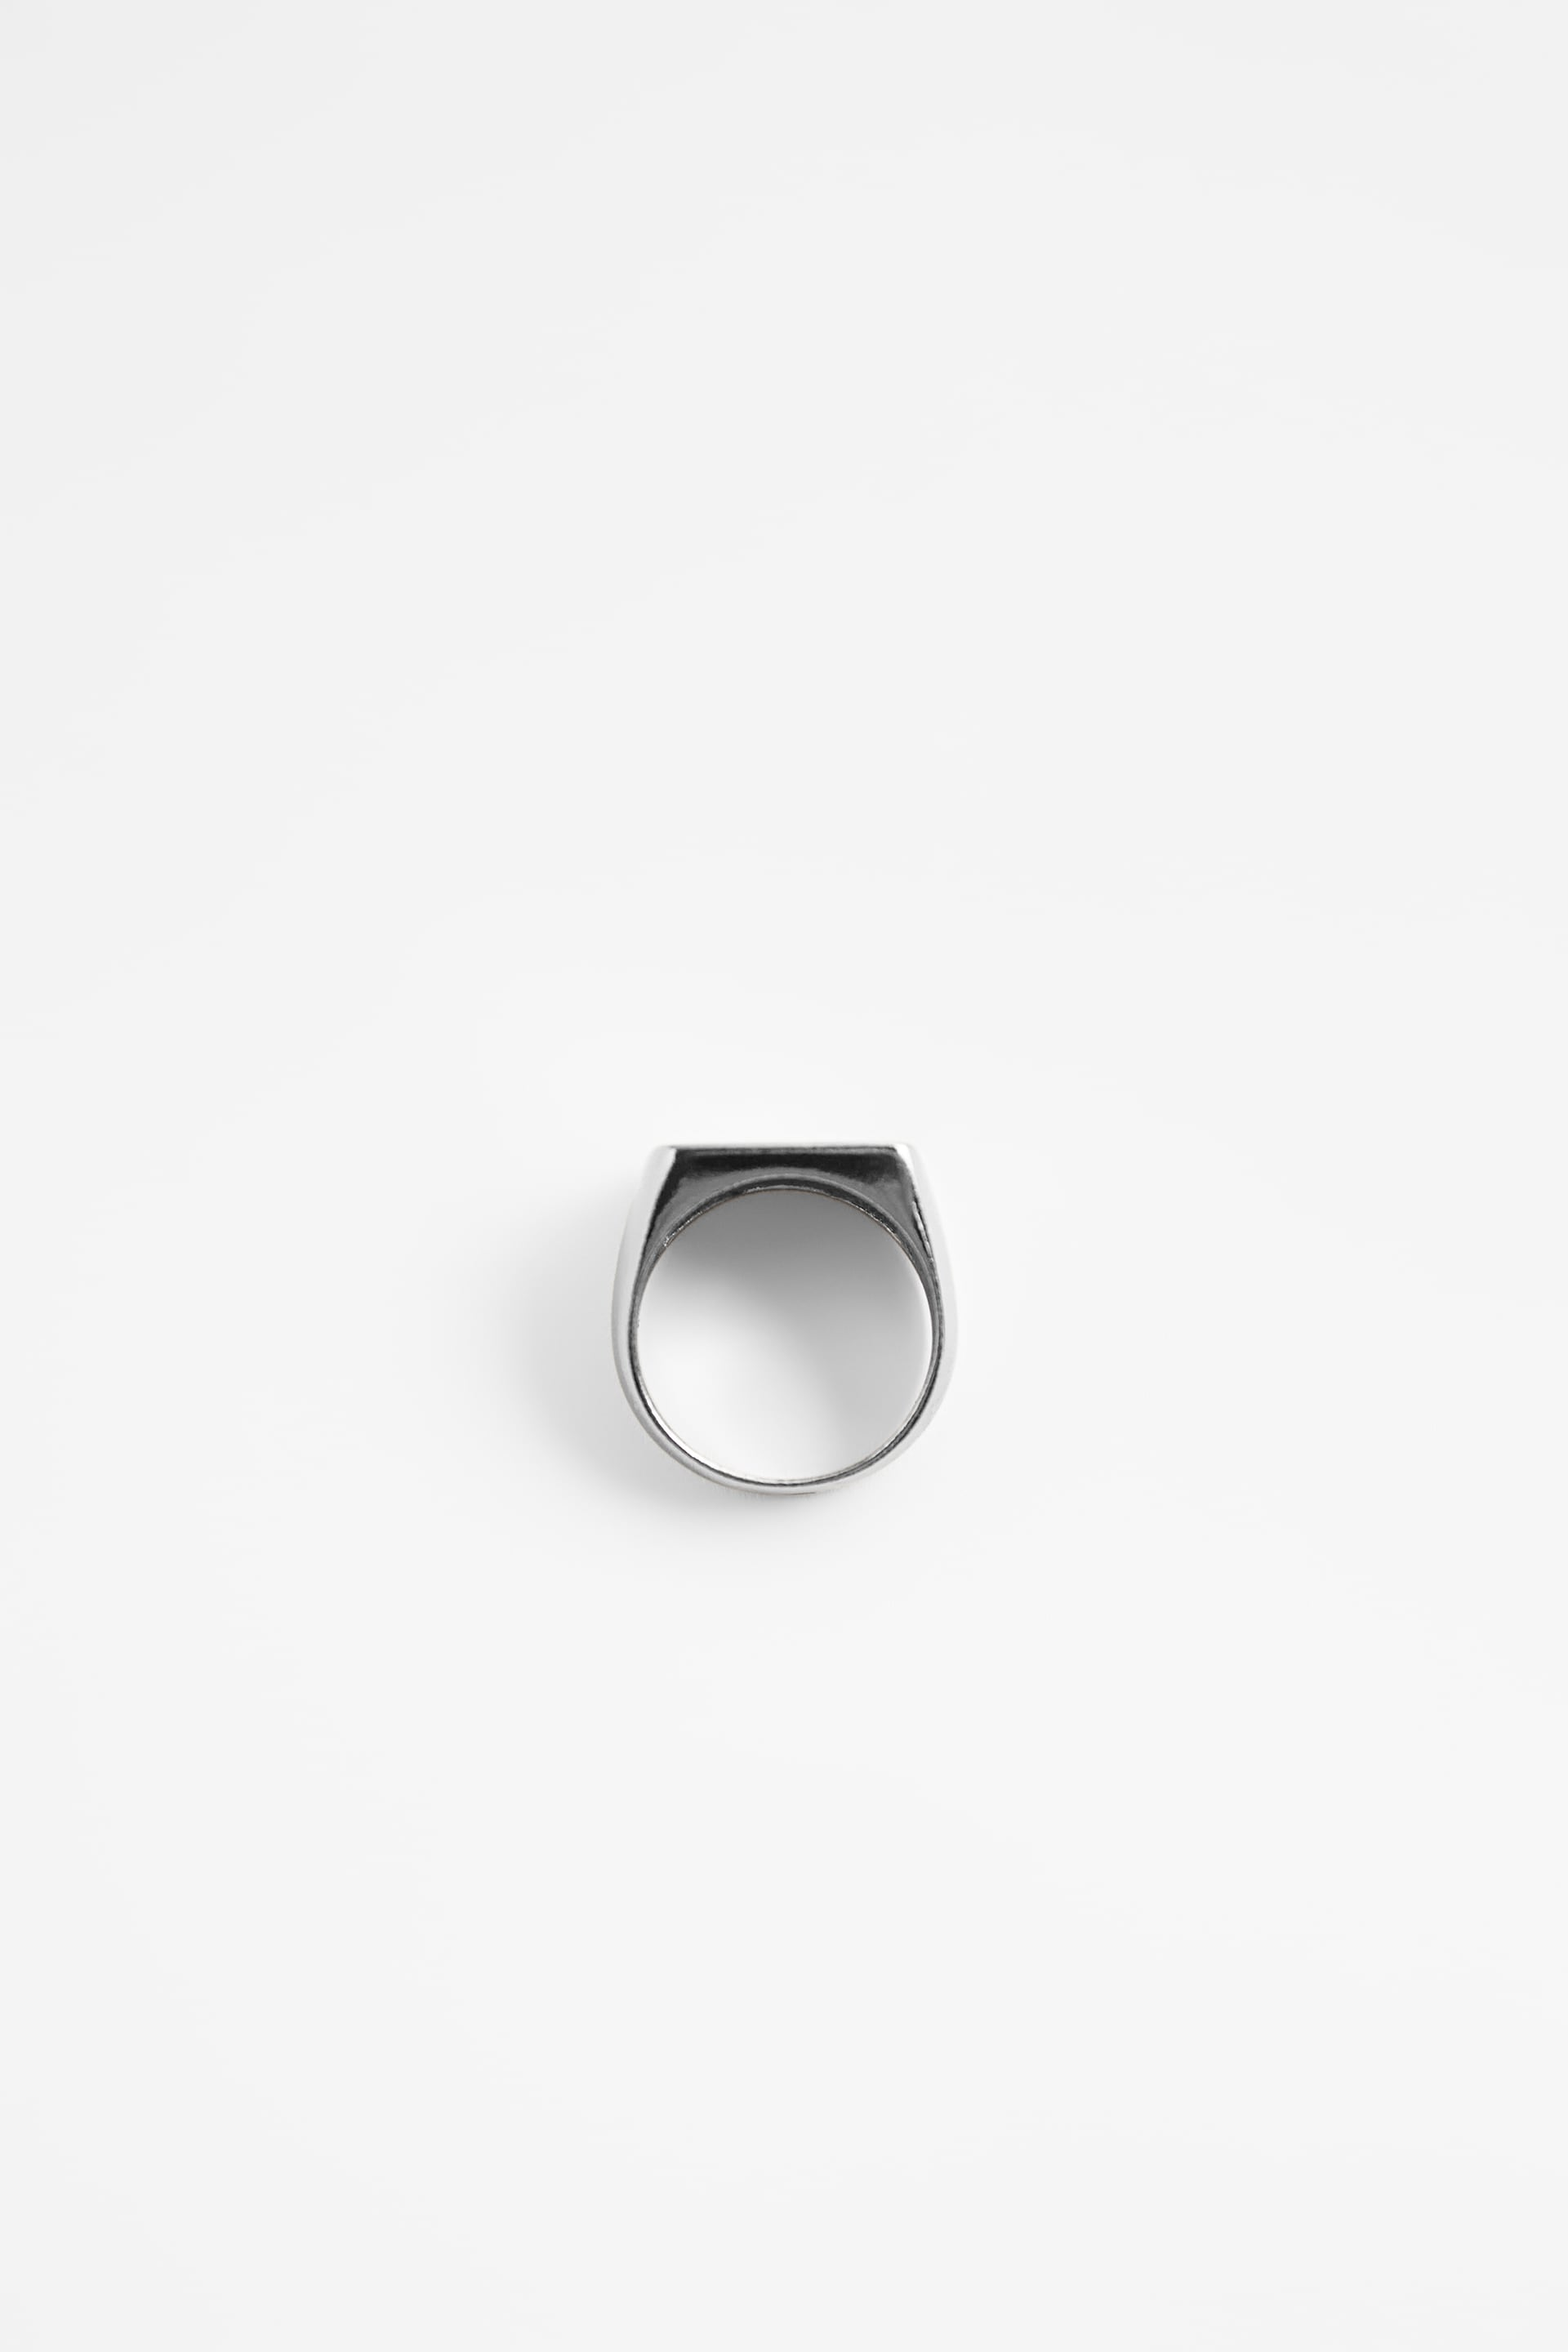 Details about  /Meher/'s Jewelry Sterling Silver Rose-Cut Moonstone /& White Zircon Gemstone Ring